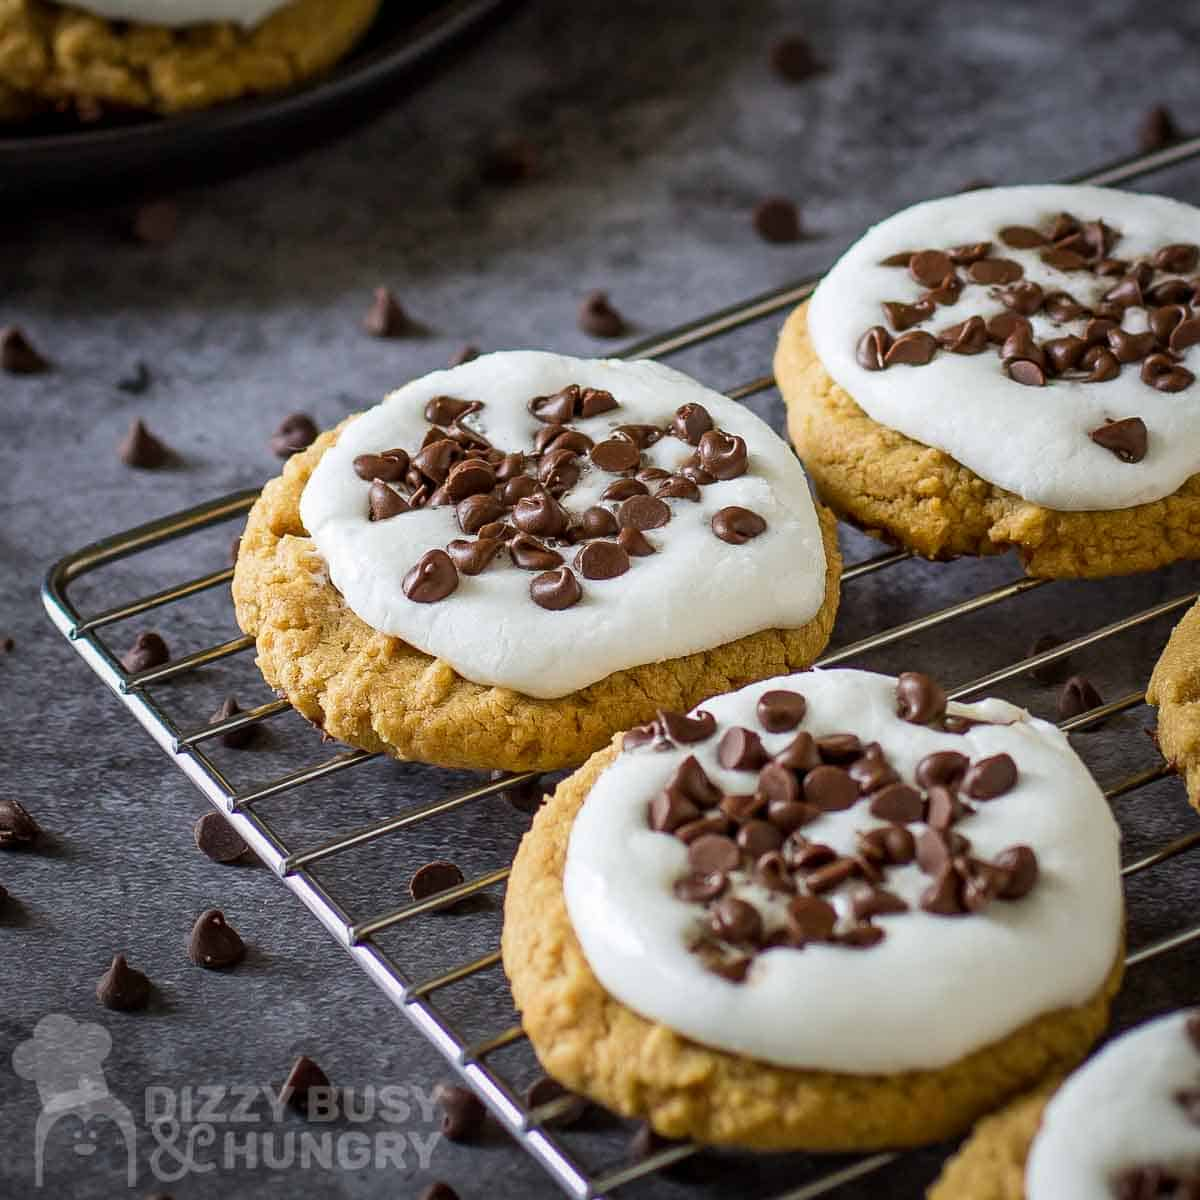 Close up side shot of multiple smores cookies on a wire cooling rack on a grey surface with chocolate chips scattered around.